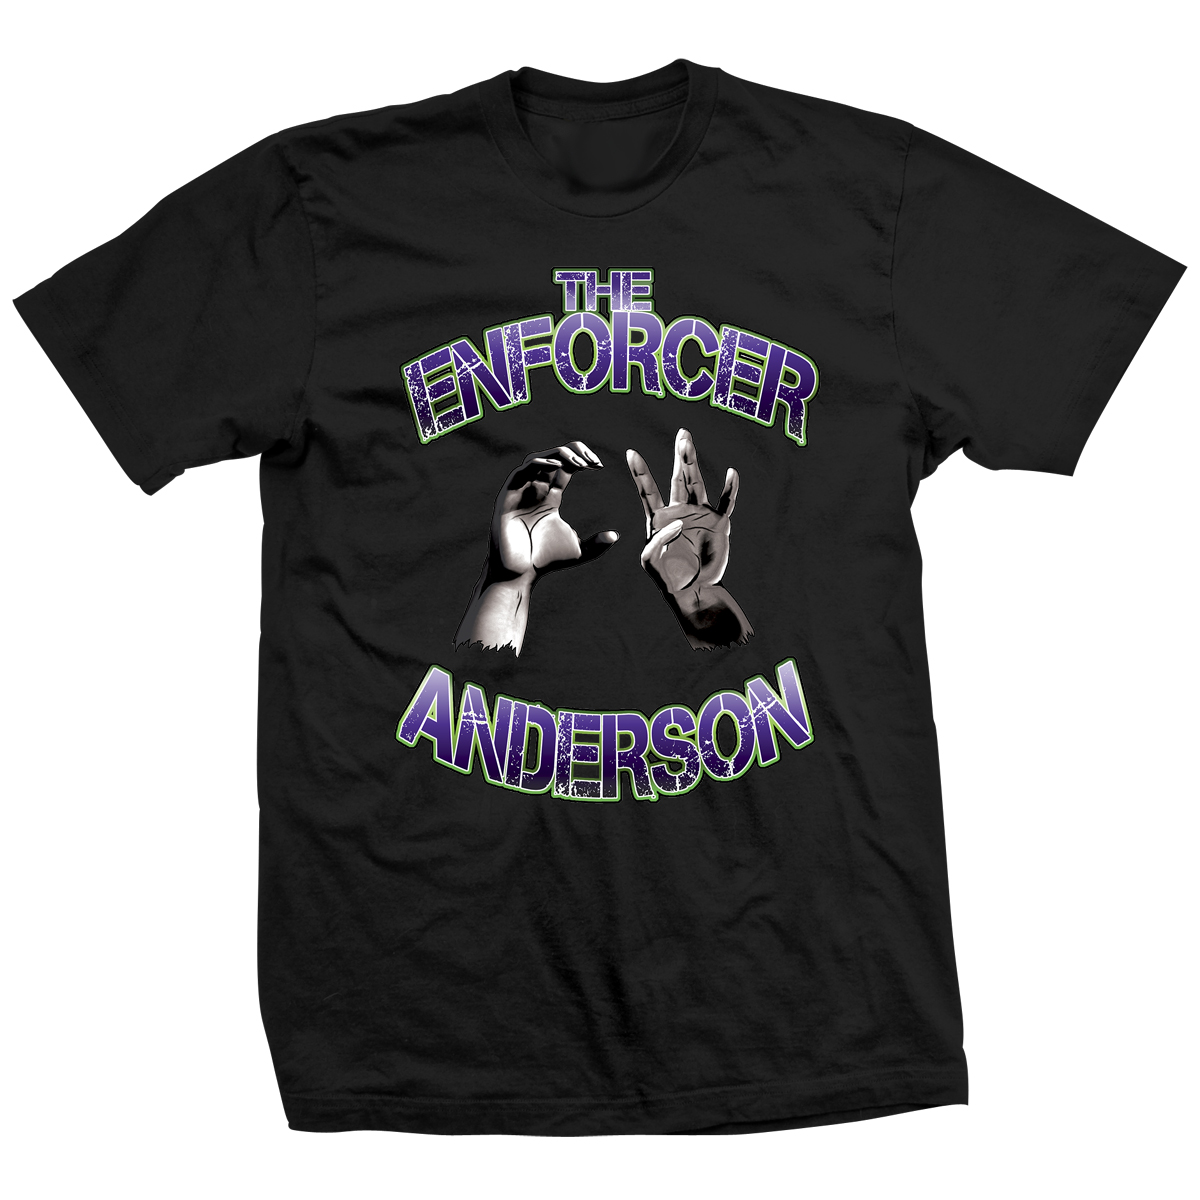 CW Anderson Hands Black T-shirt